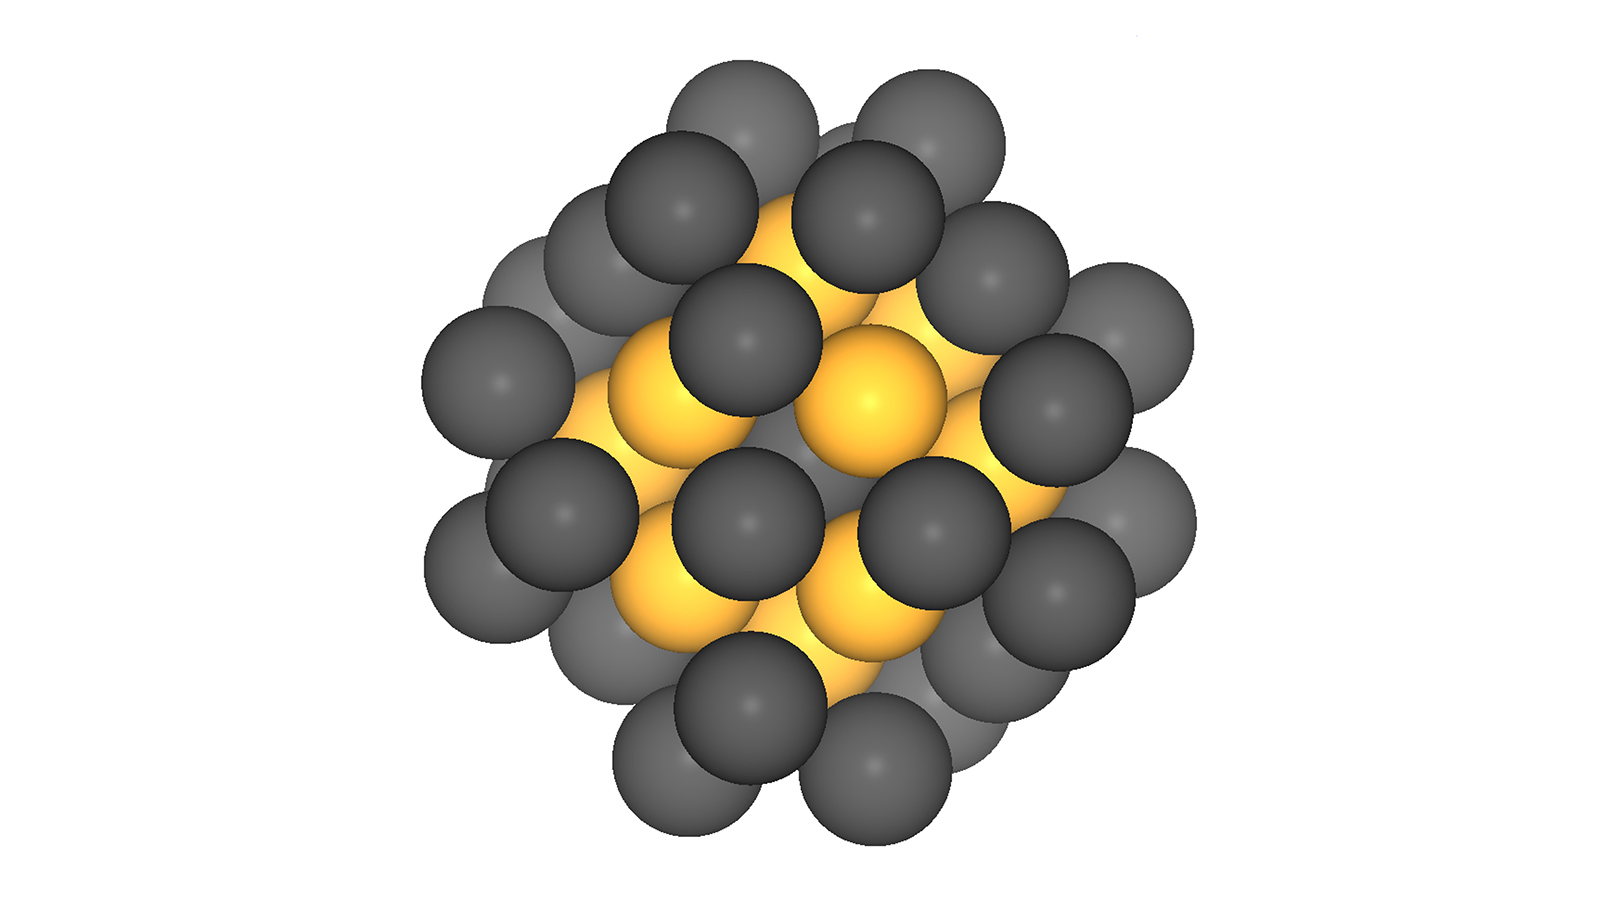 Platin-nanoparticles with 40 atoms.